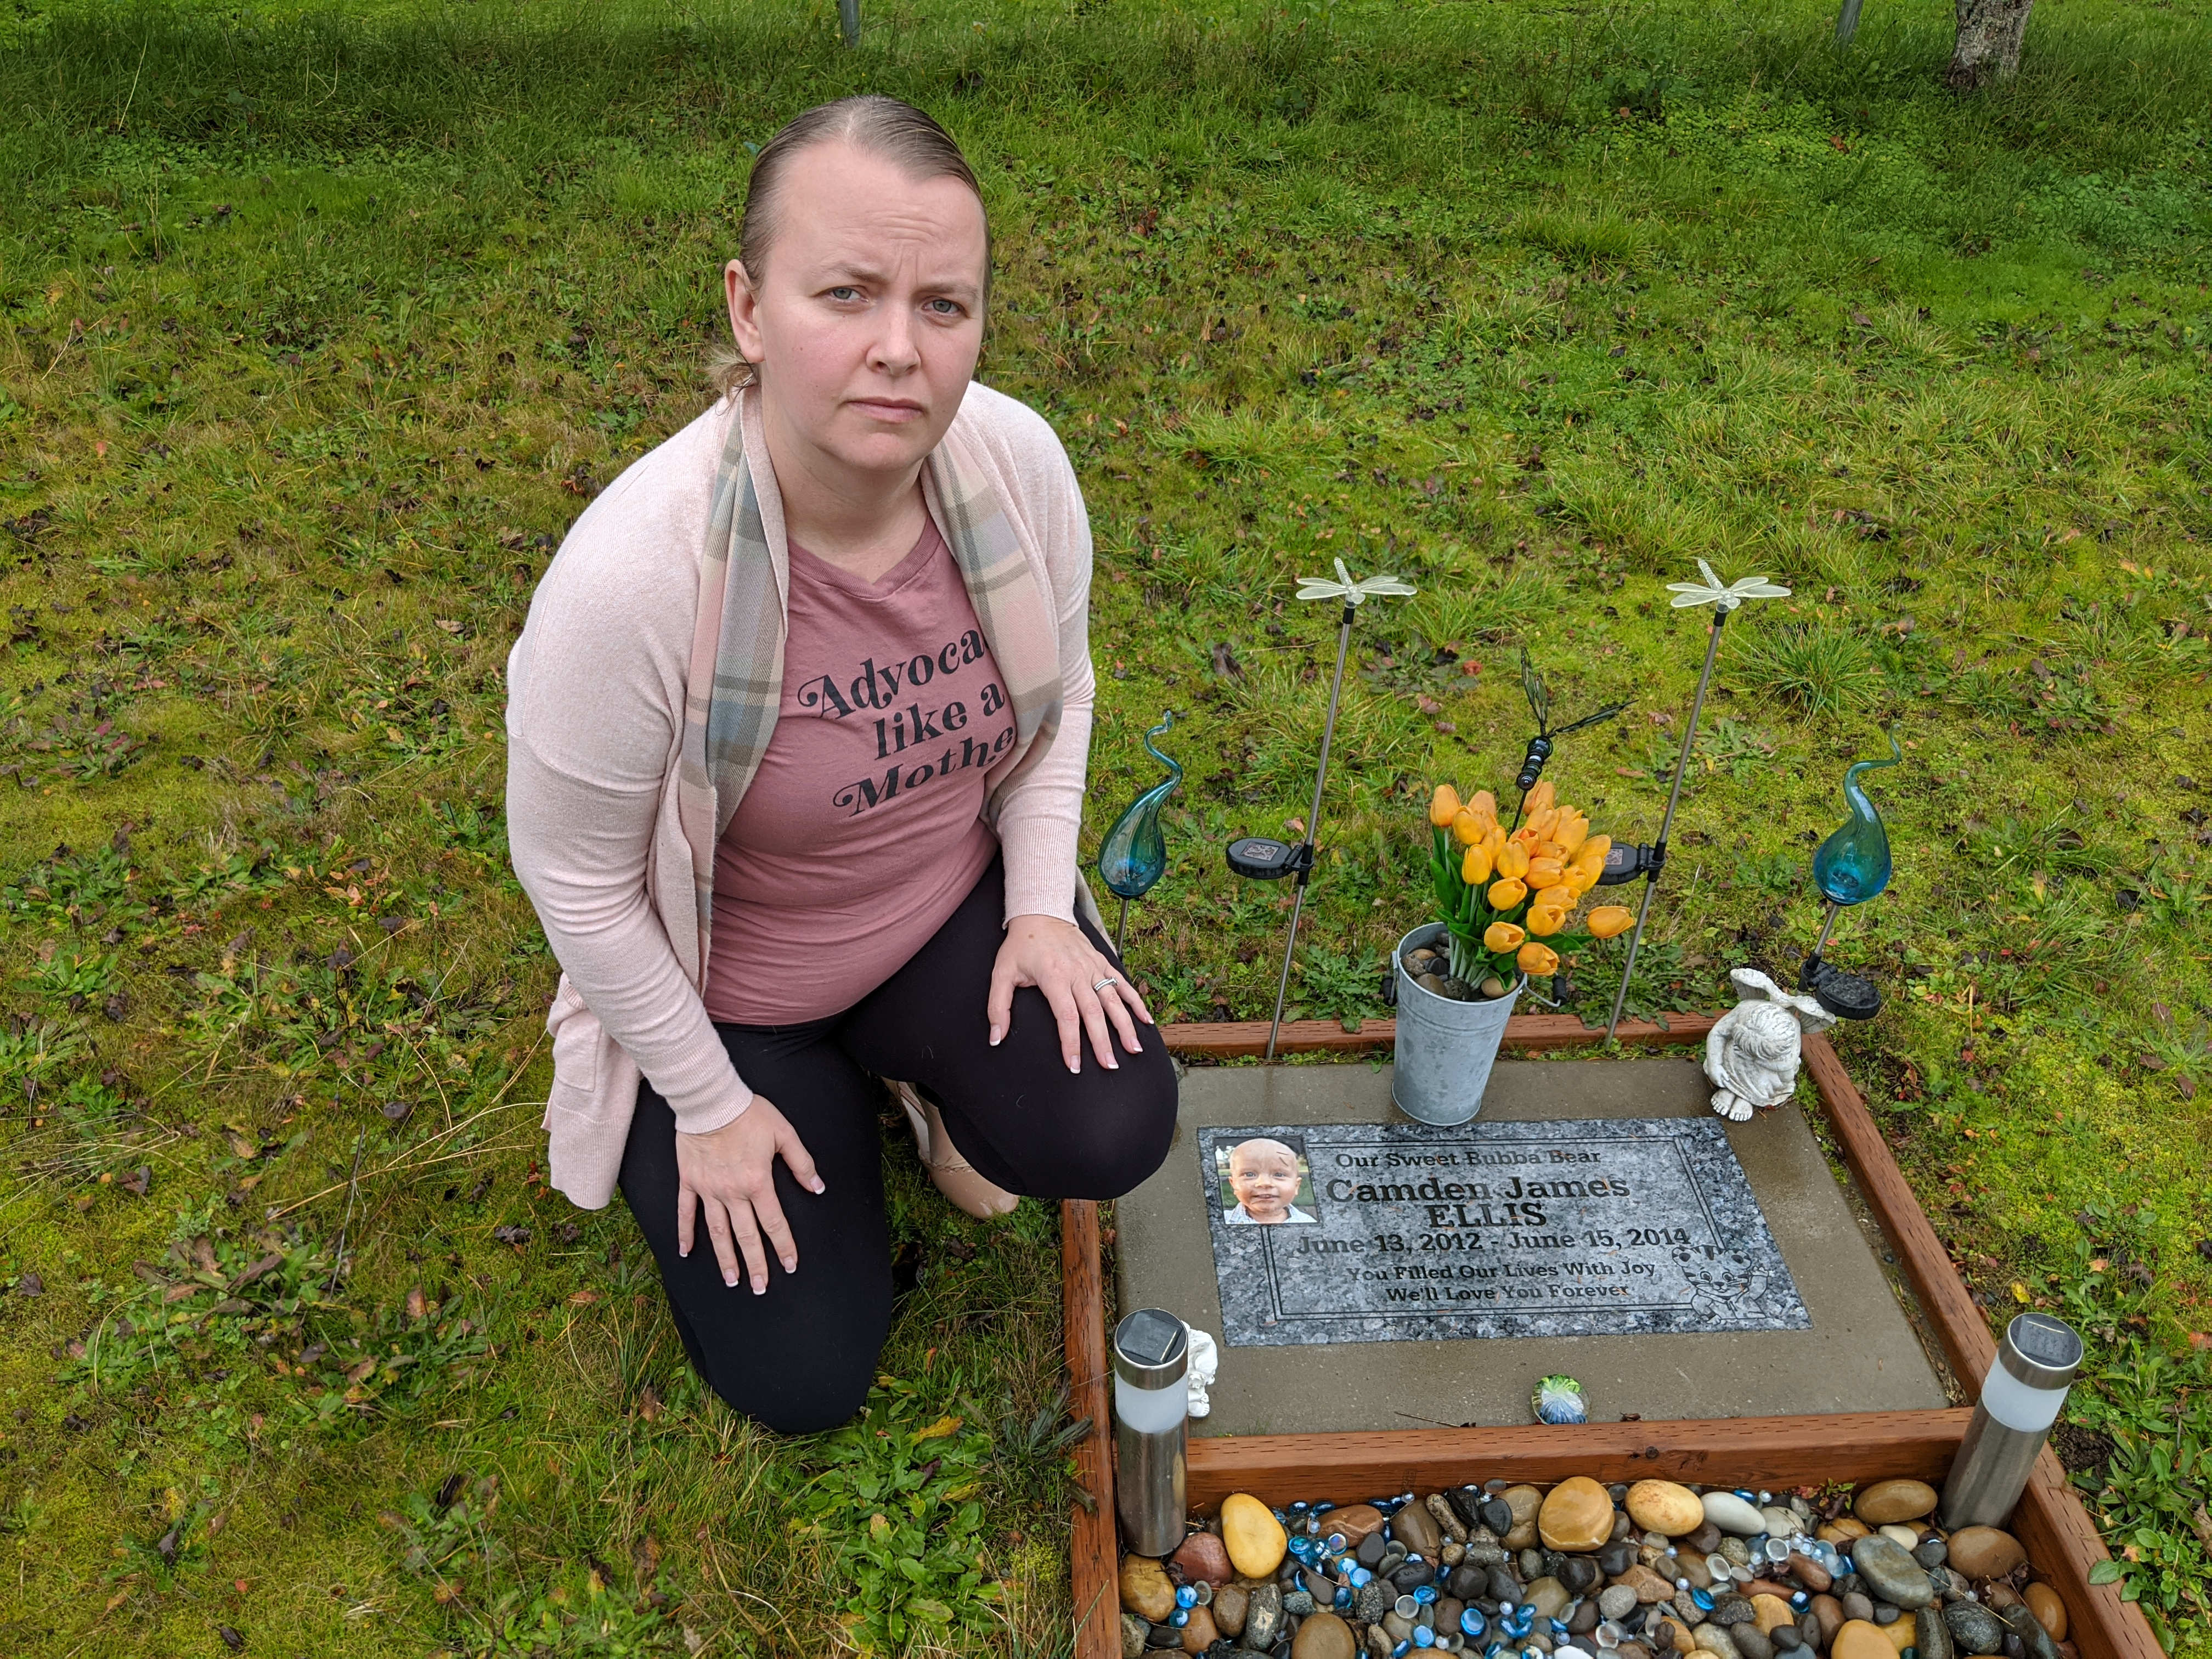 Crystal Ellis at the grave of her son Camden.